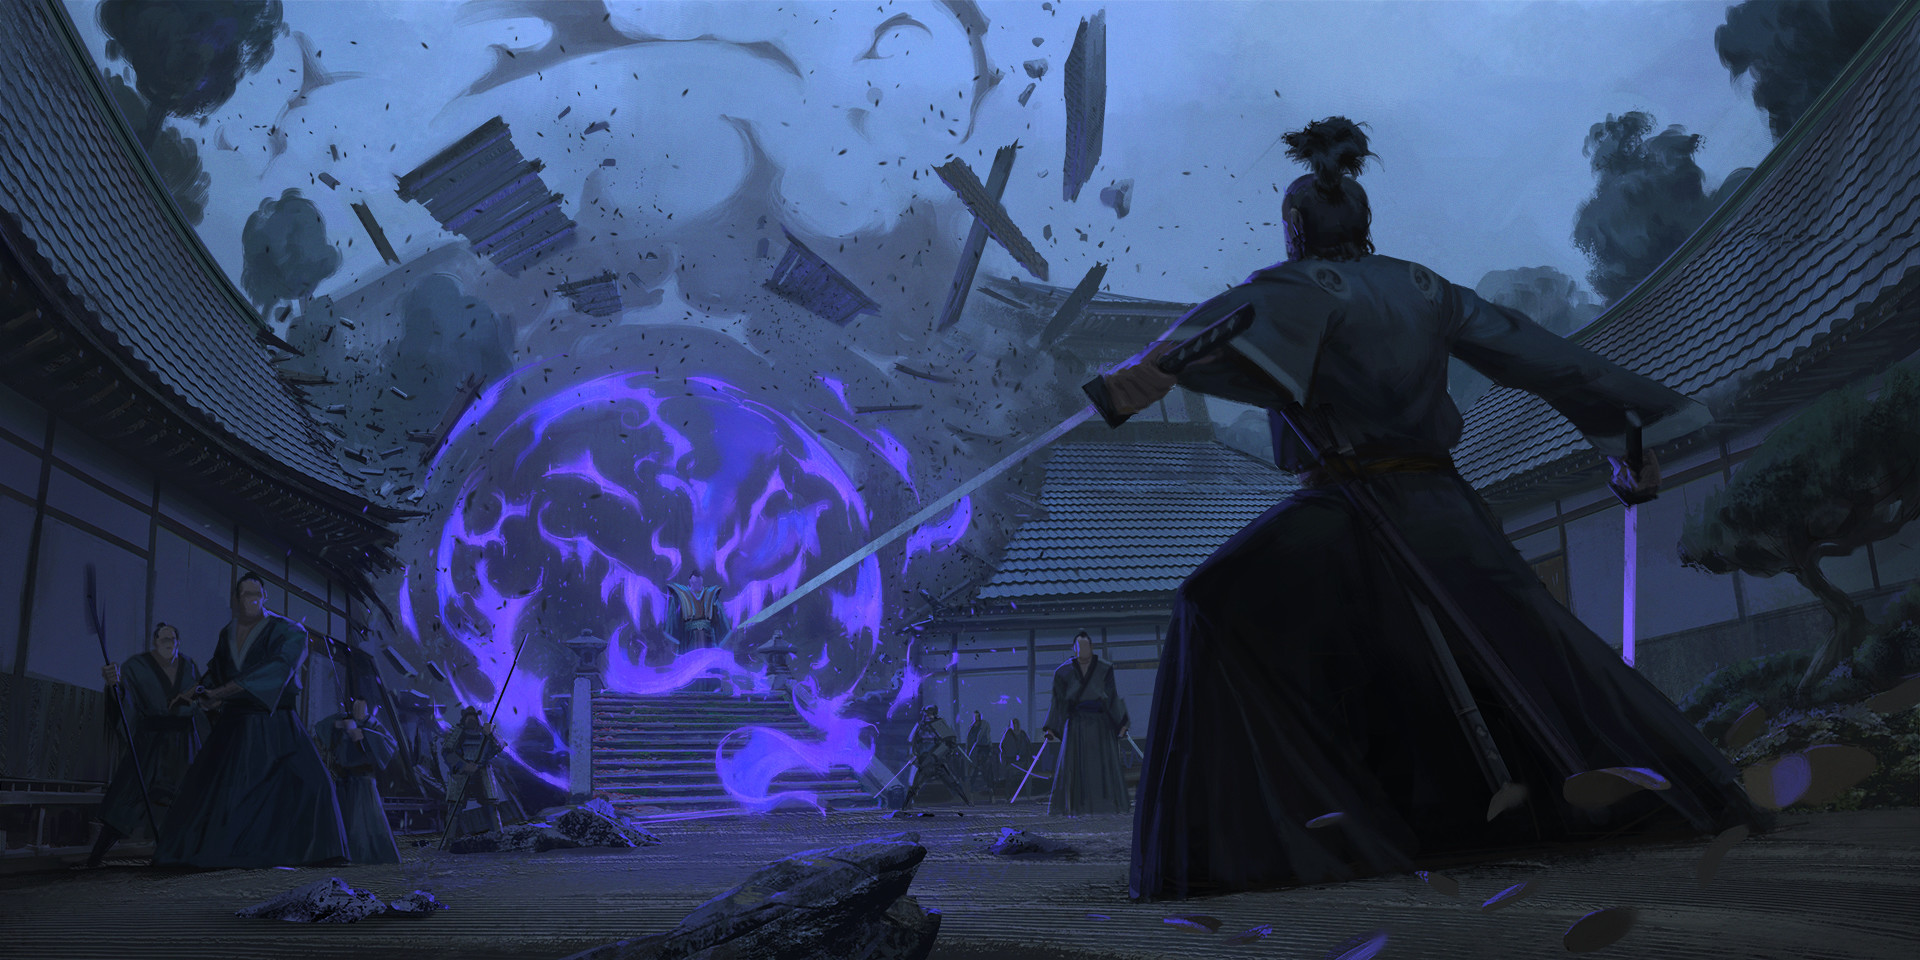 Klaus pillon theshogunate keyframe004 final